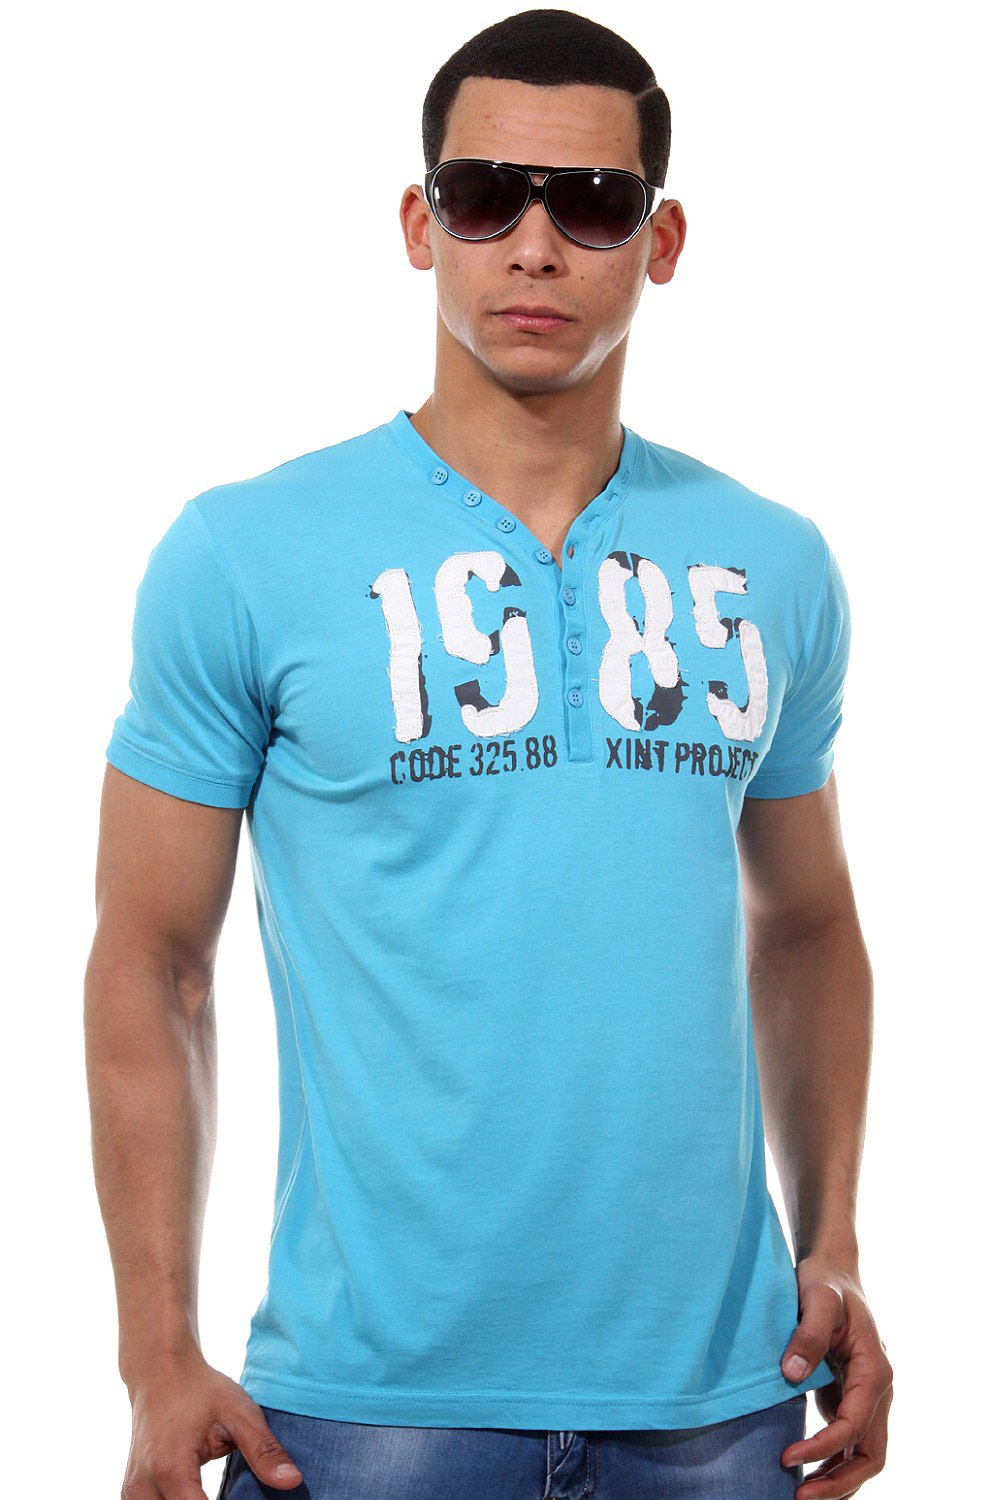 XINT t-shirt v-neck at oboy.com